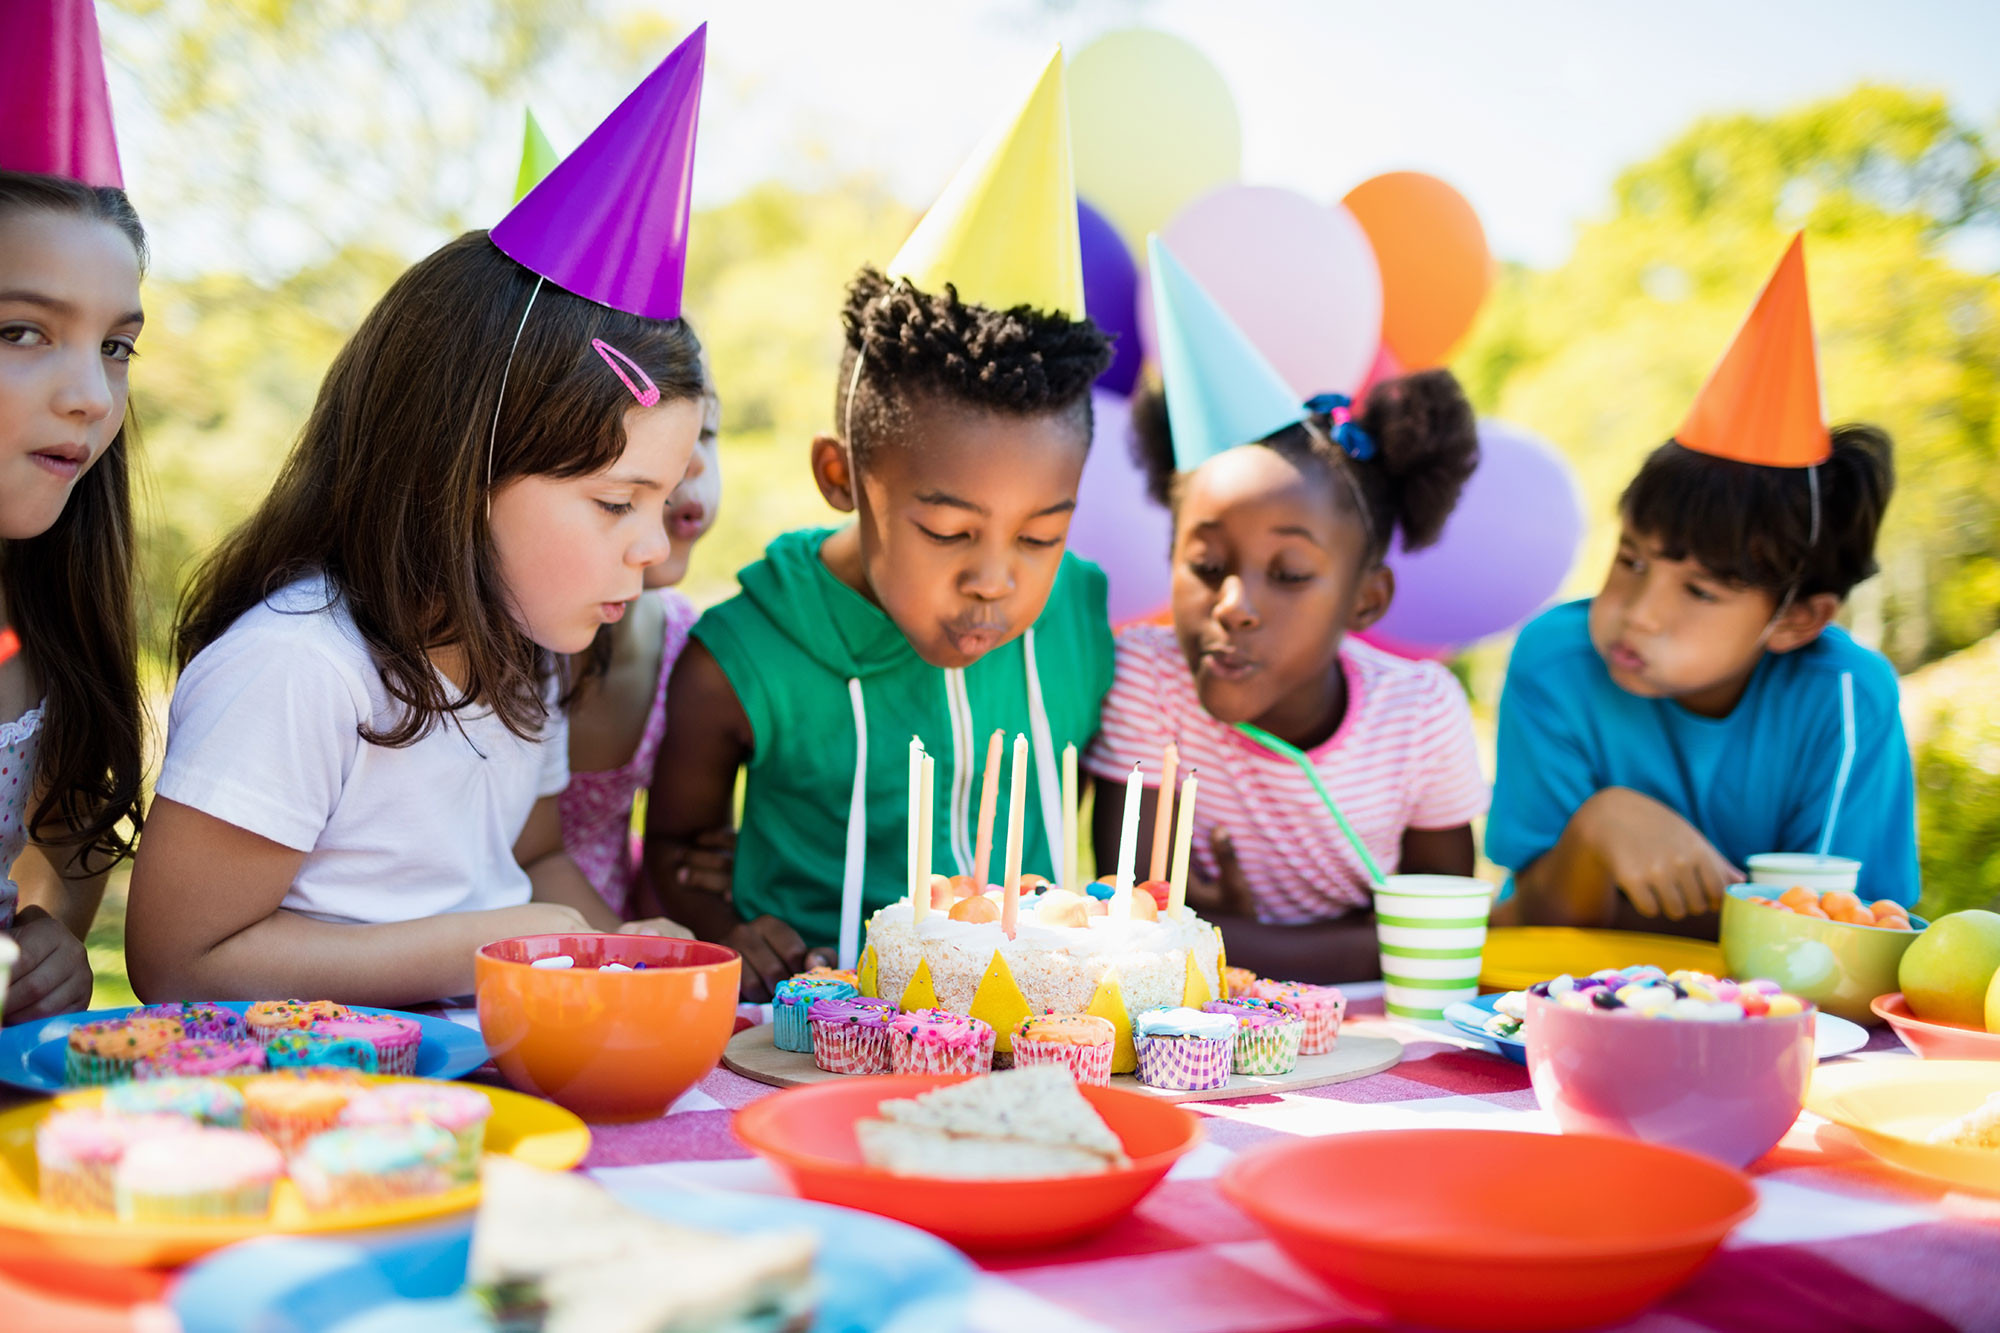 Best ideas about Fun Birthday Party Places For 10 Year Olds . Save or Pin Fabulous Places in Houston to Hold Your Tween's Birthday Now.